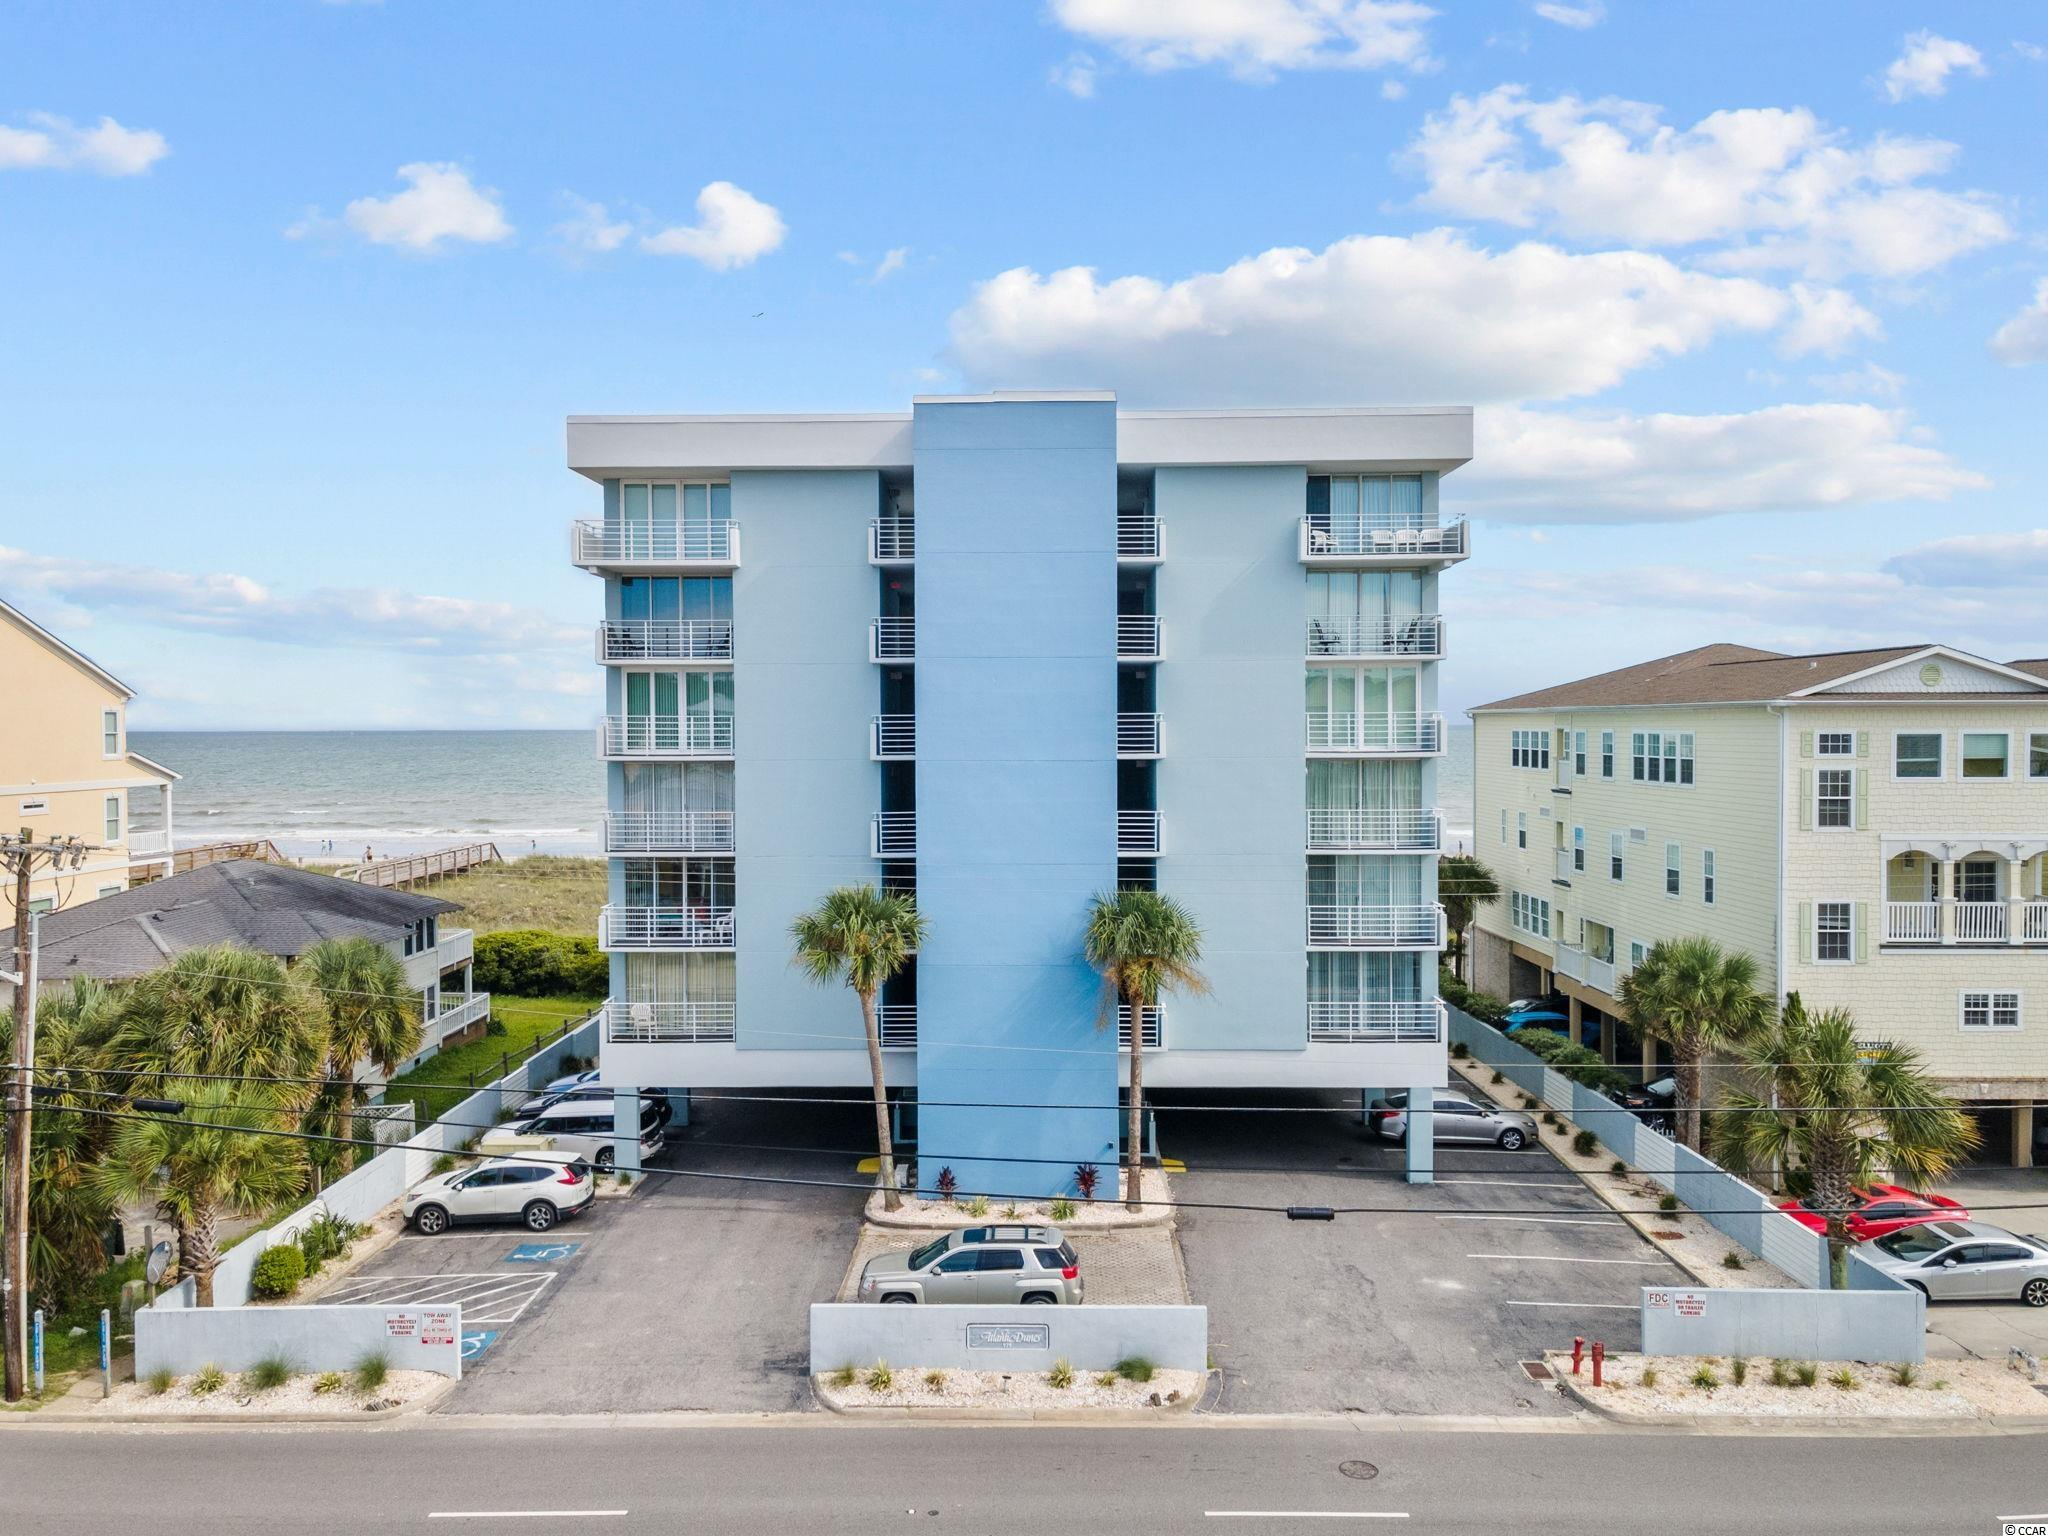 Rare chance to own a beautiful unit in this quiet, boutique building located in the heart of North Myrtle Beach! Atlantic Dunes has just 22 units, has recently had the exterior repainted and the units have all new hurricane impact sliders and windows. This particular unit has had only 2 owners and has never been rented! Sit on your balcony, relax while taking in the beautiful view of the Atlantic Ocean and pool area. Grab a friend and take a walk to the beach over the beautiful dunes on the newly installed boardwalk. This unit is being sold fully furnished and is truly turn key. Schedule your appointment today...you will be HAPPY you did!